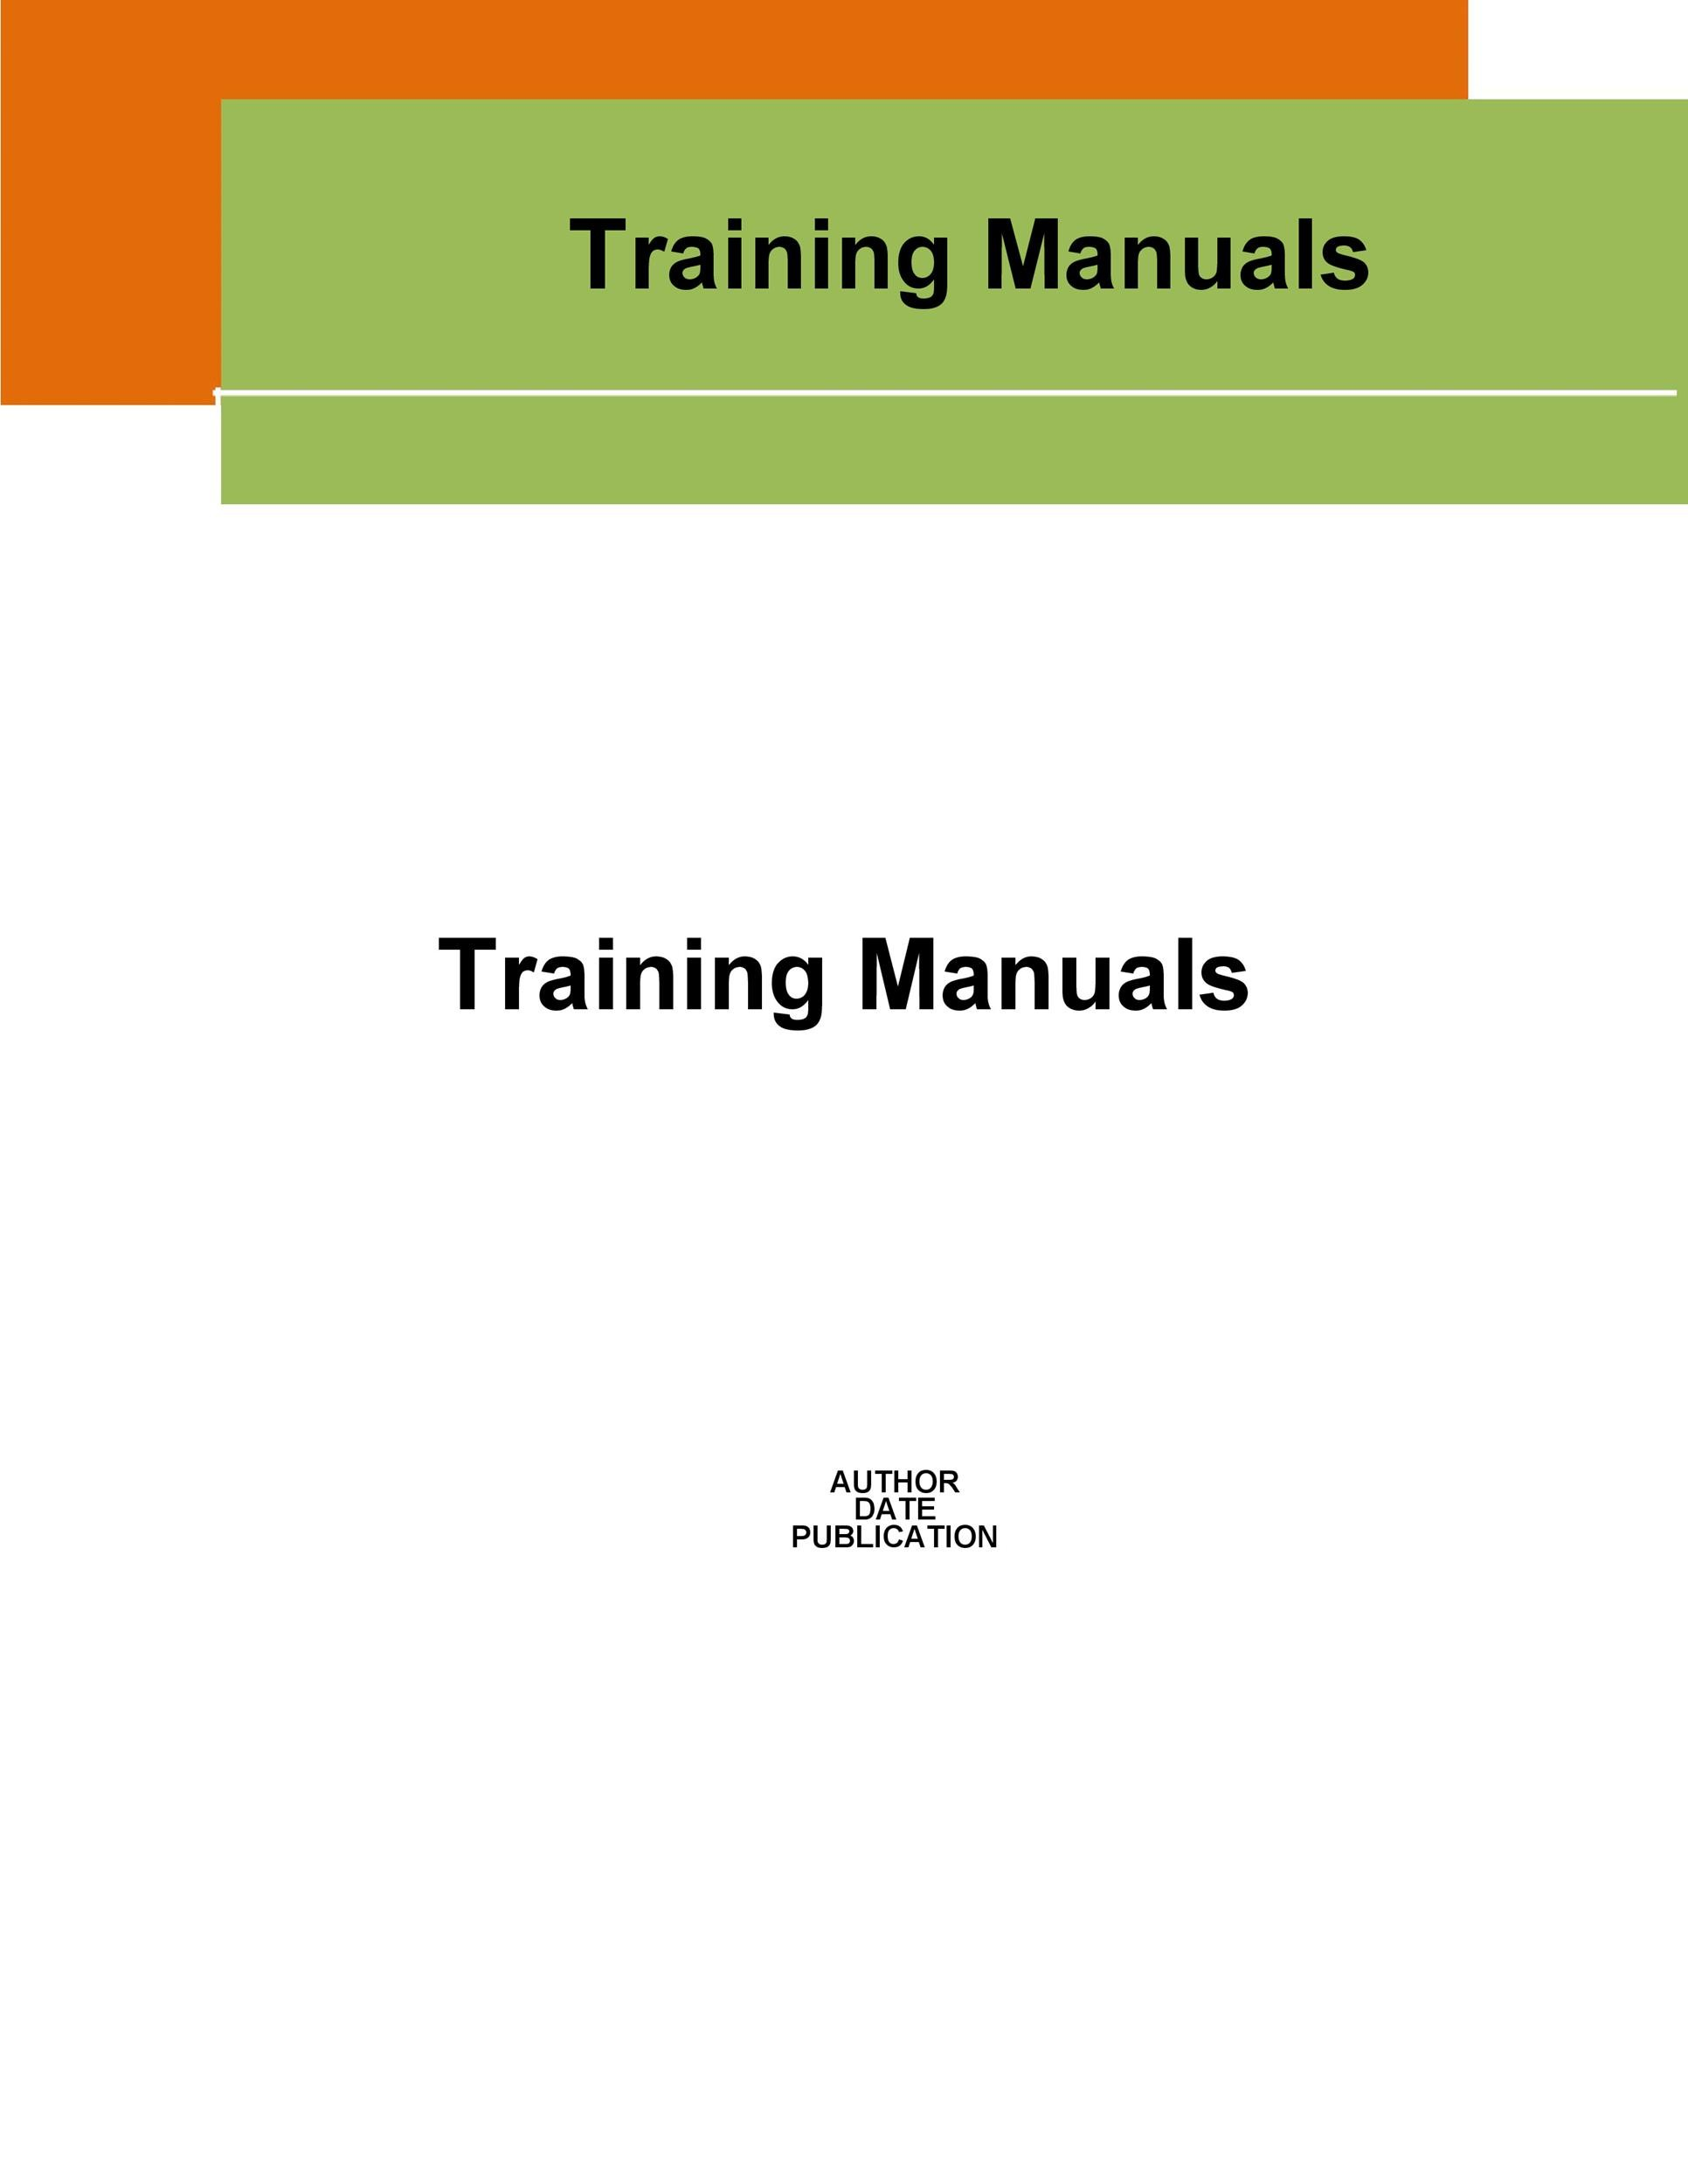 Training Manual - 40+ Free Templates  Examples in MS Word